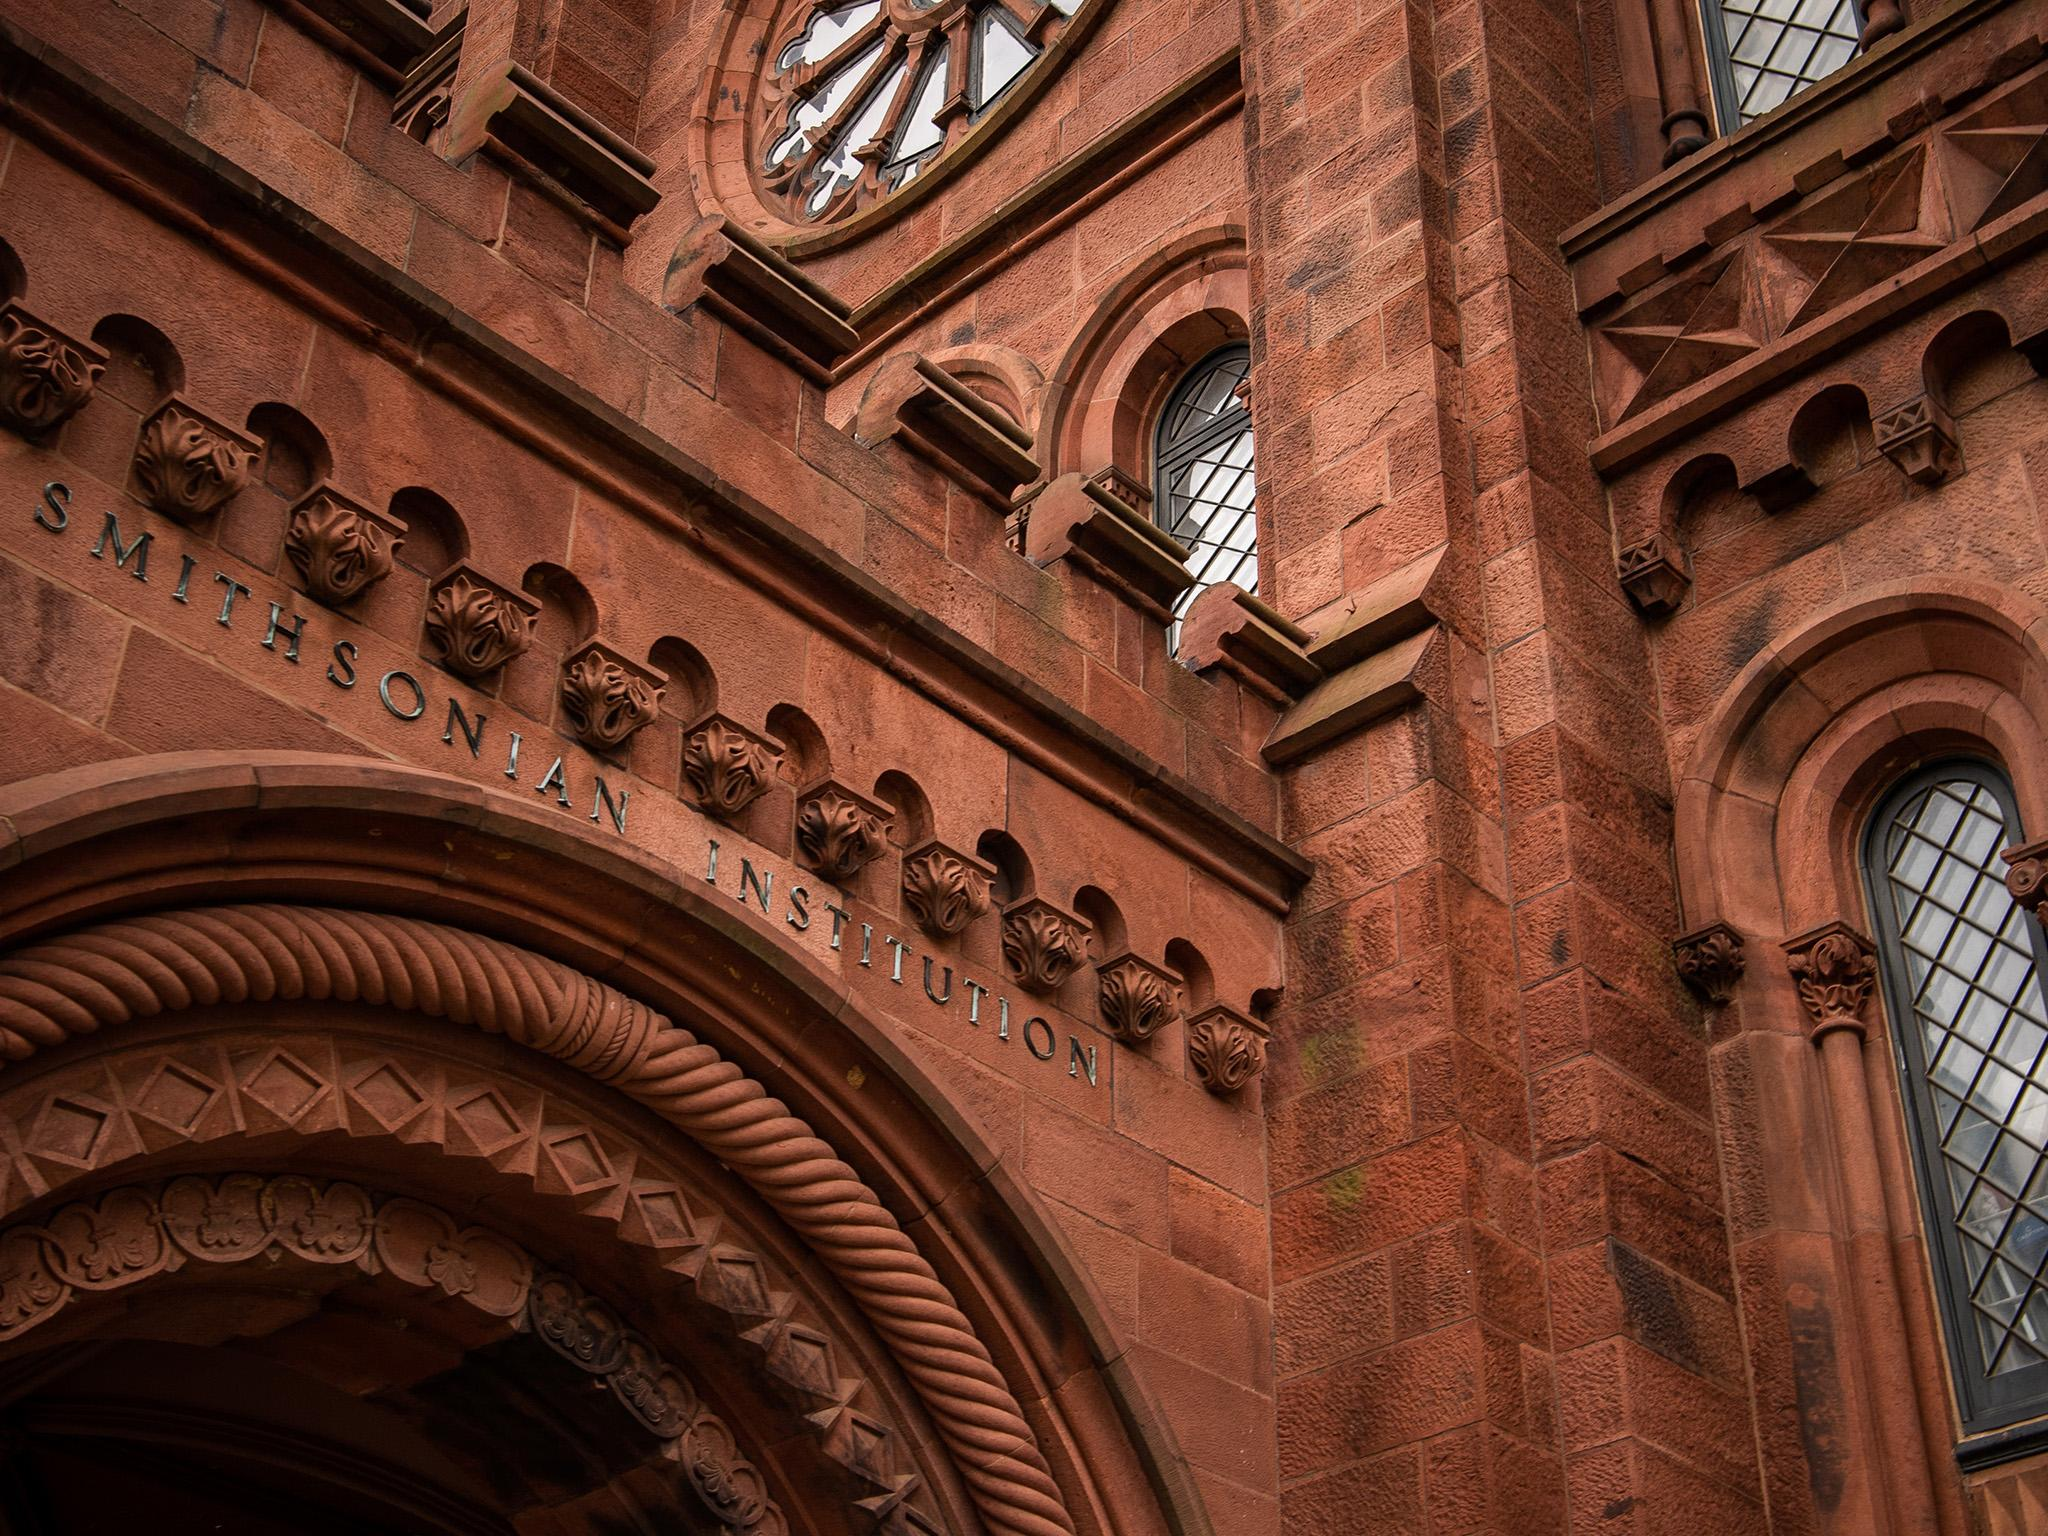 The Smithsonian Castle needs a major renovation, but the popular museums keep getting the cash